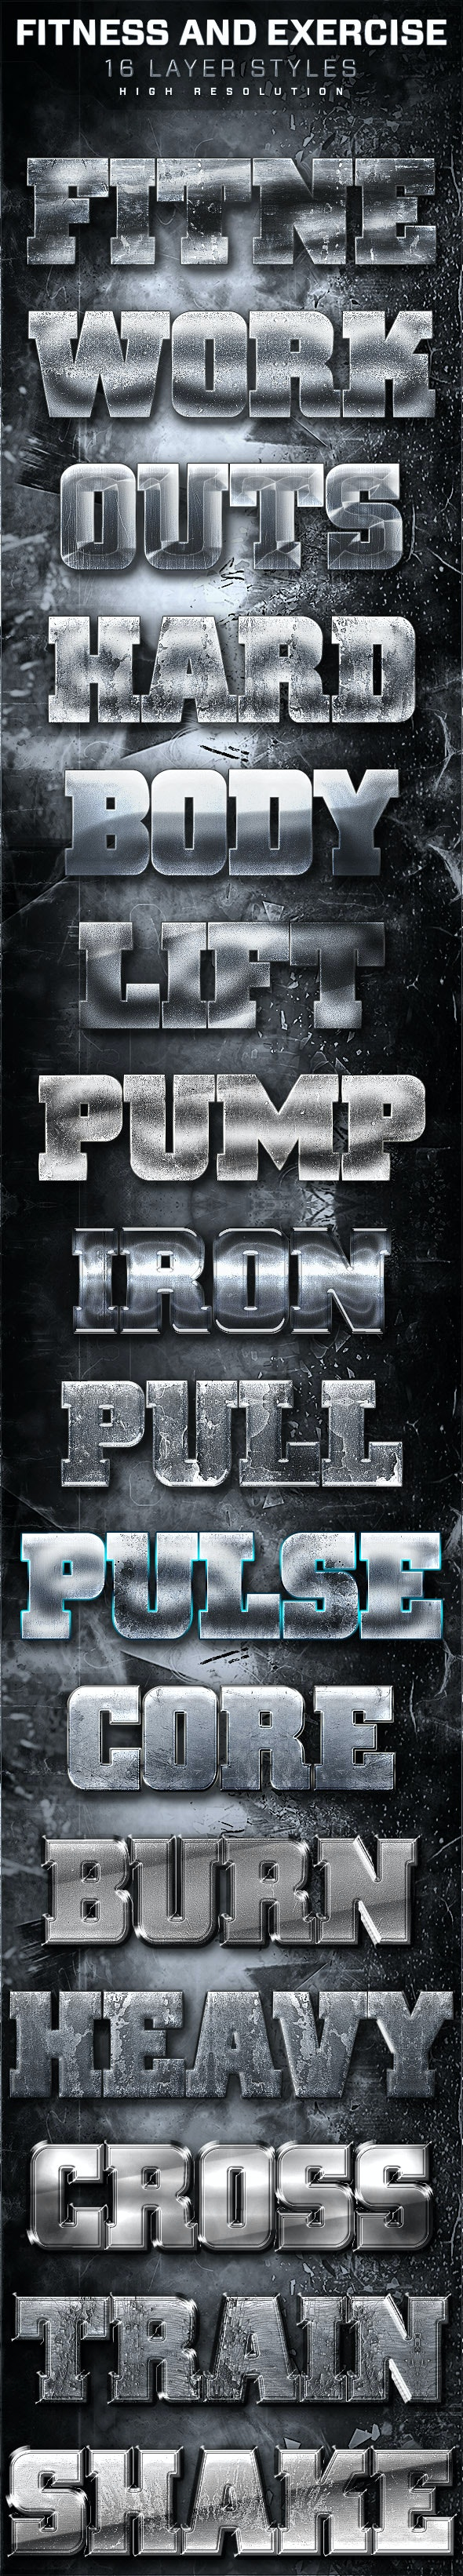 16 Fitness And Exercise Layer Styles - Text Effects Styles